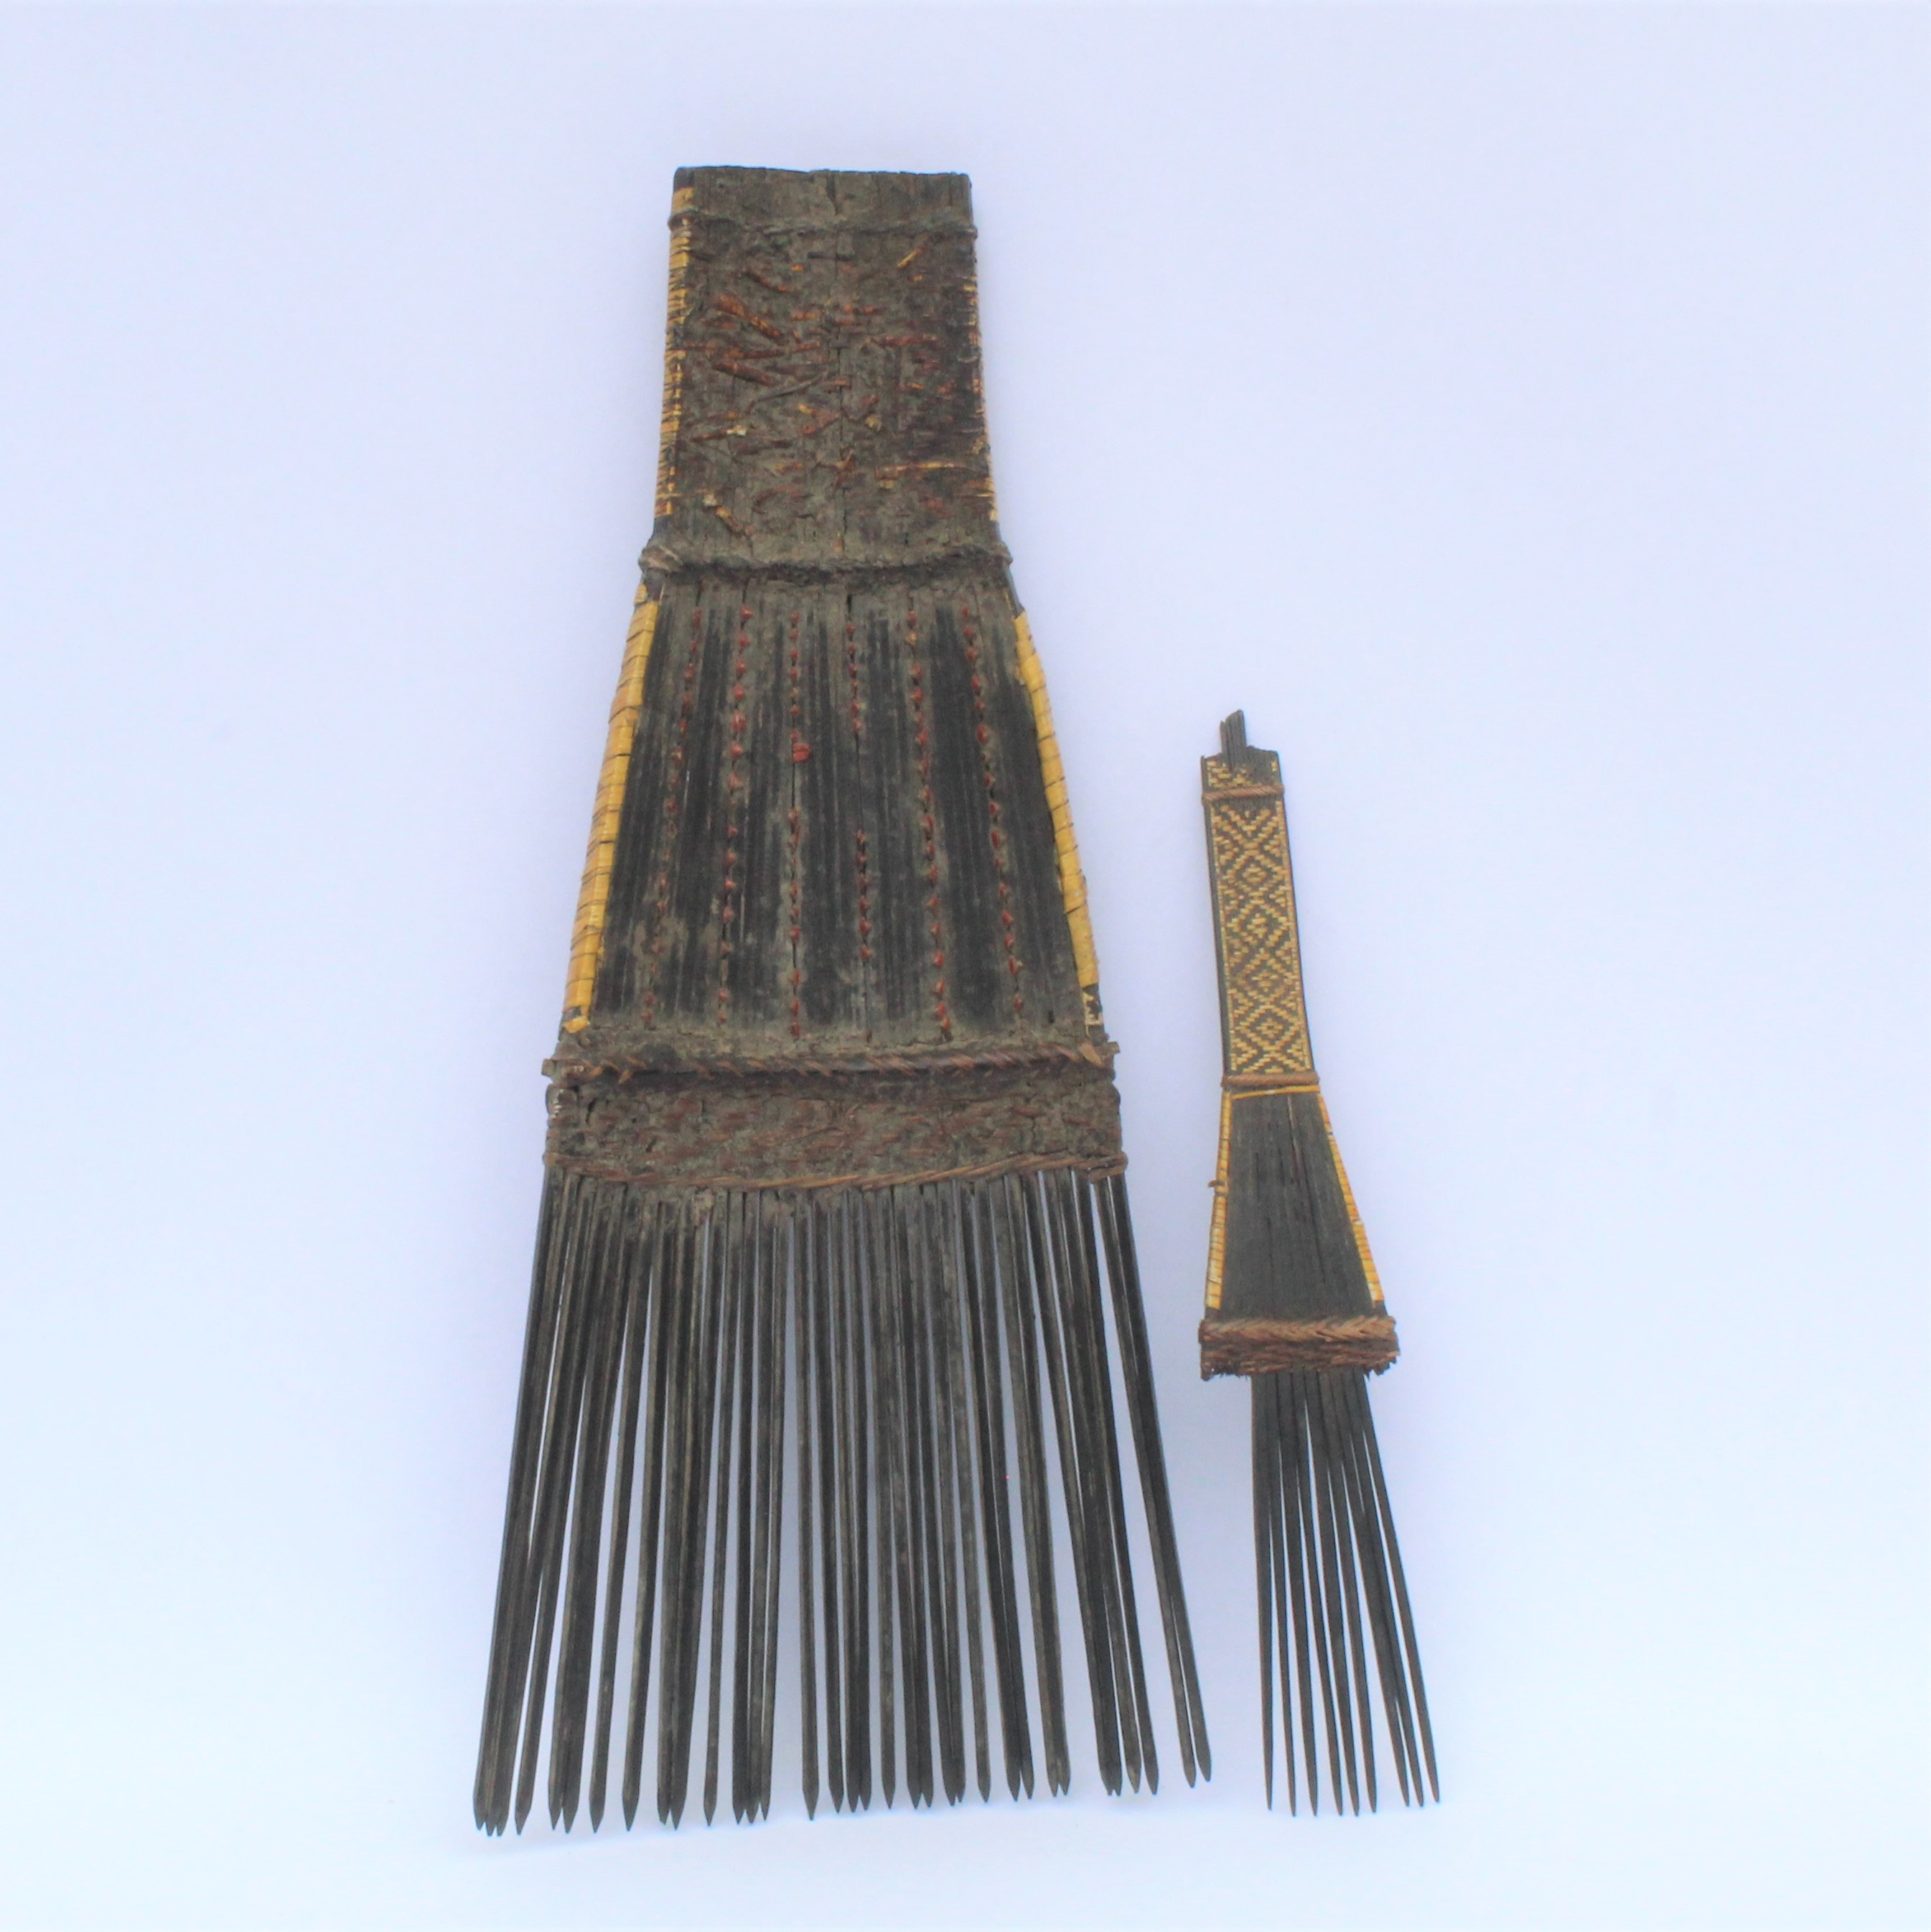 Two orchid fiber combs.